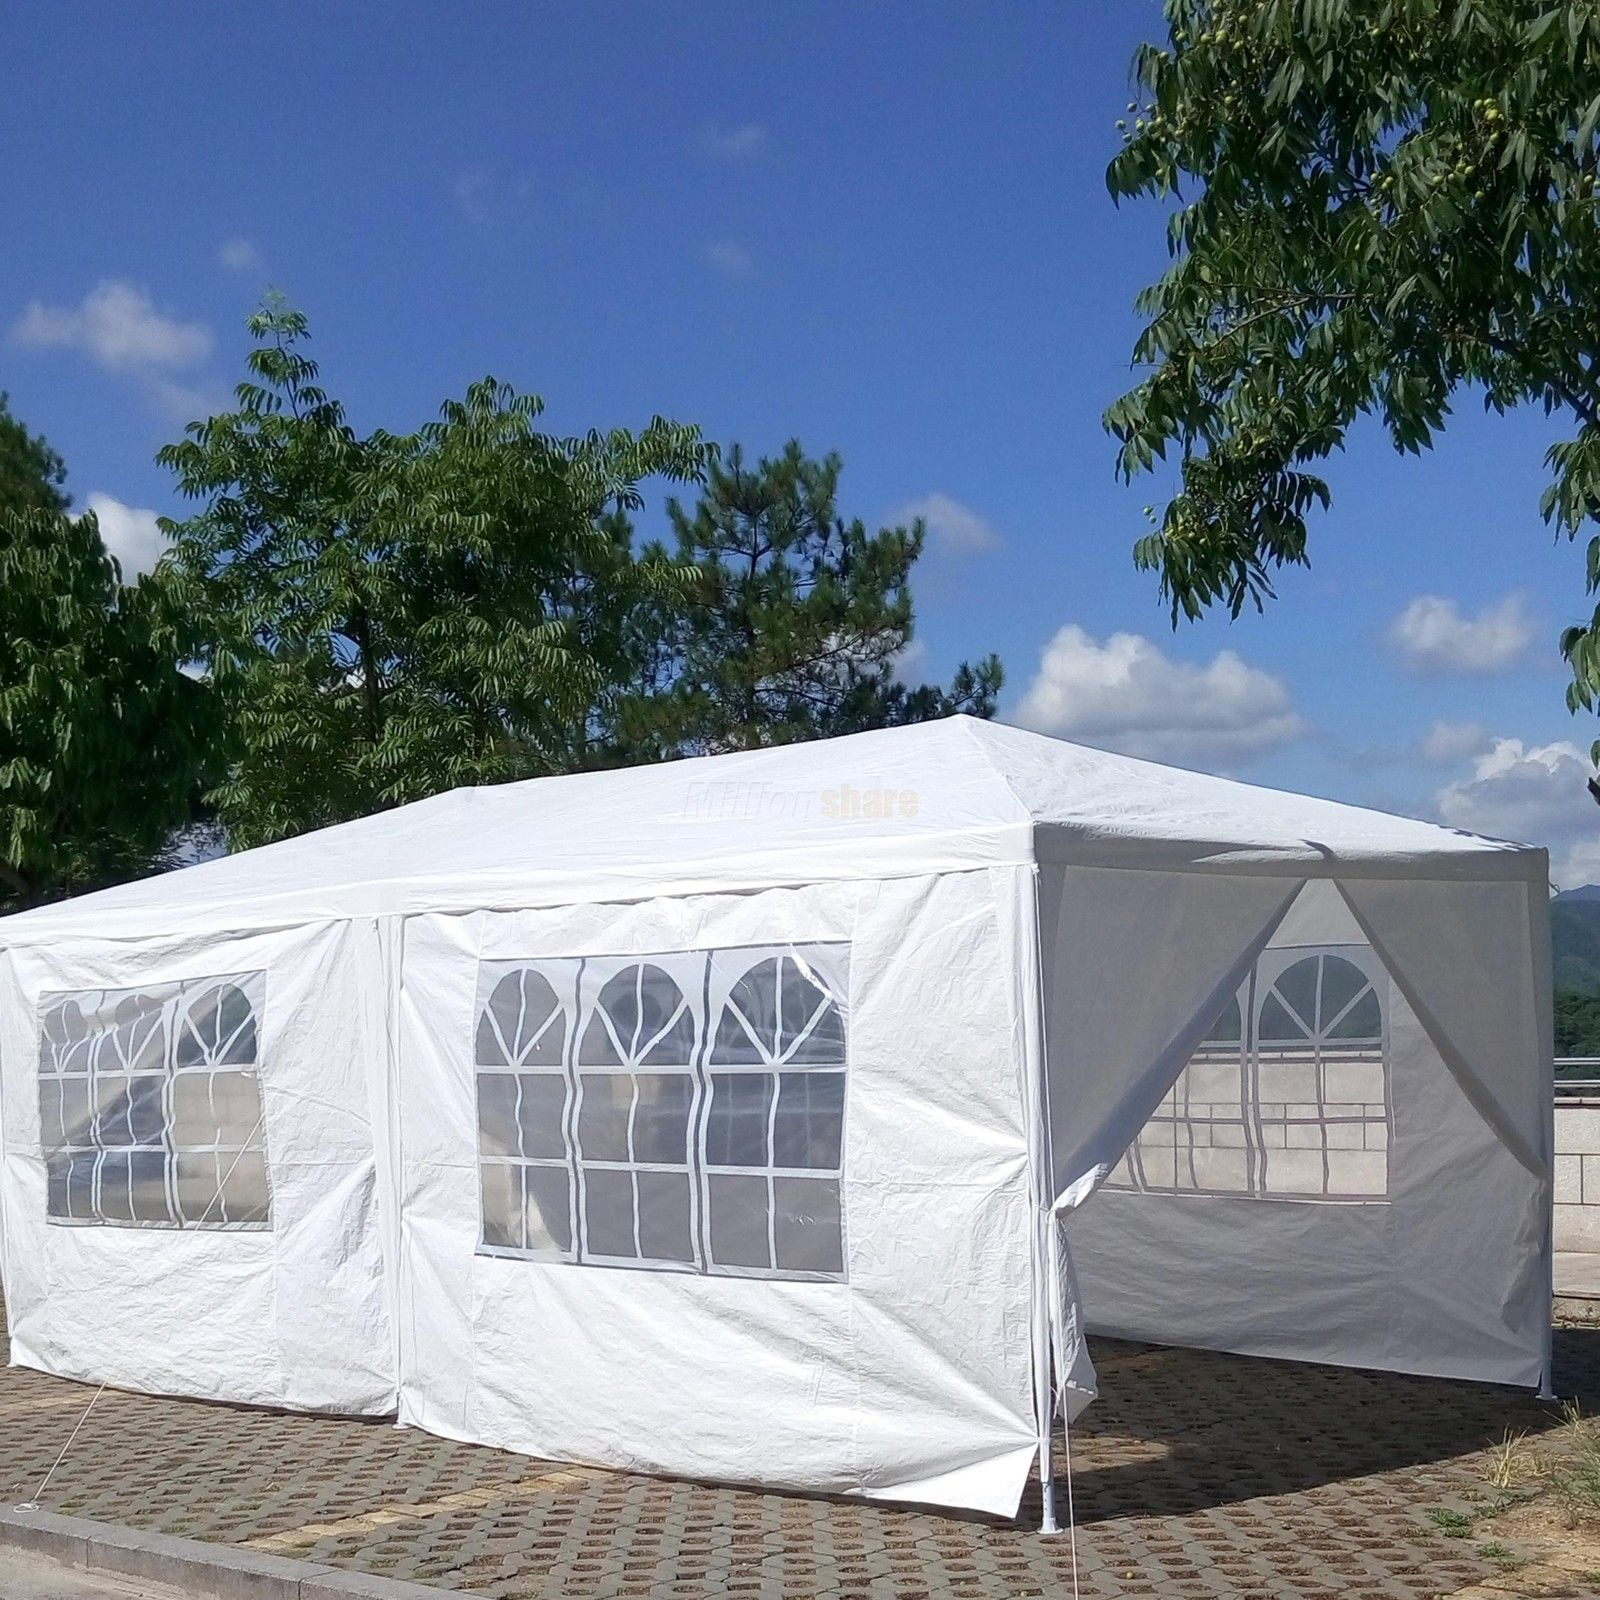 10 x 20 White Party Tent Canopy Gazebo & x 20 White Party Tent Canopy Gazebo